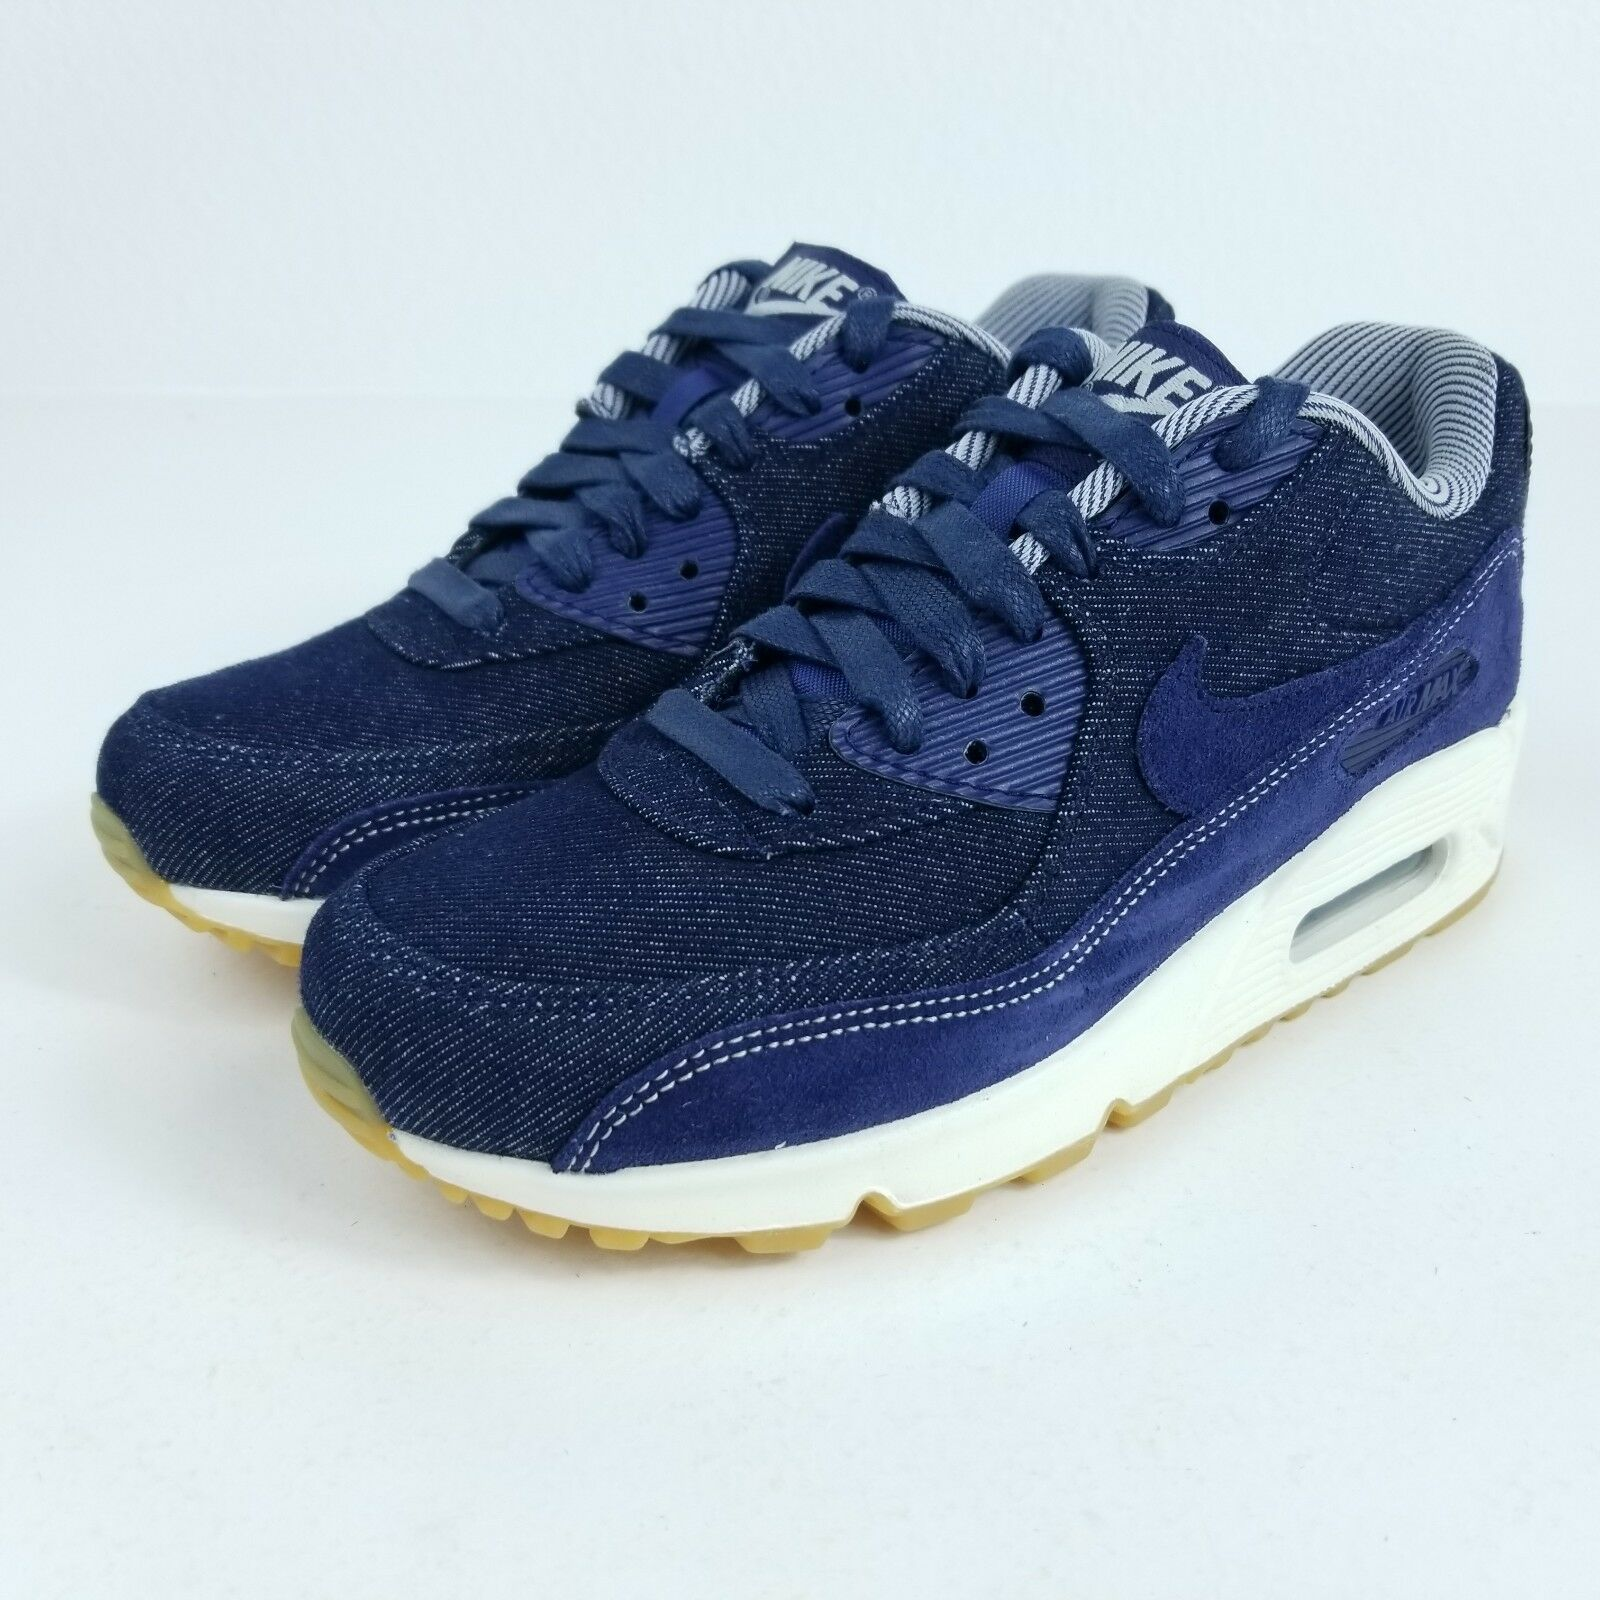 NIKE Air Max 90 SE Womens Sz 7.5 Shoes Denim Blue White Gum 881105 401